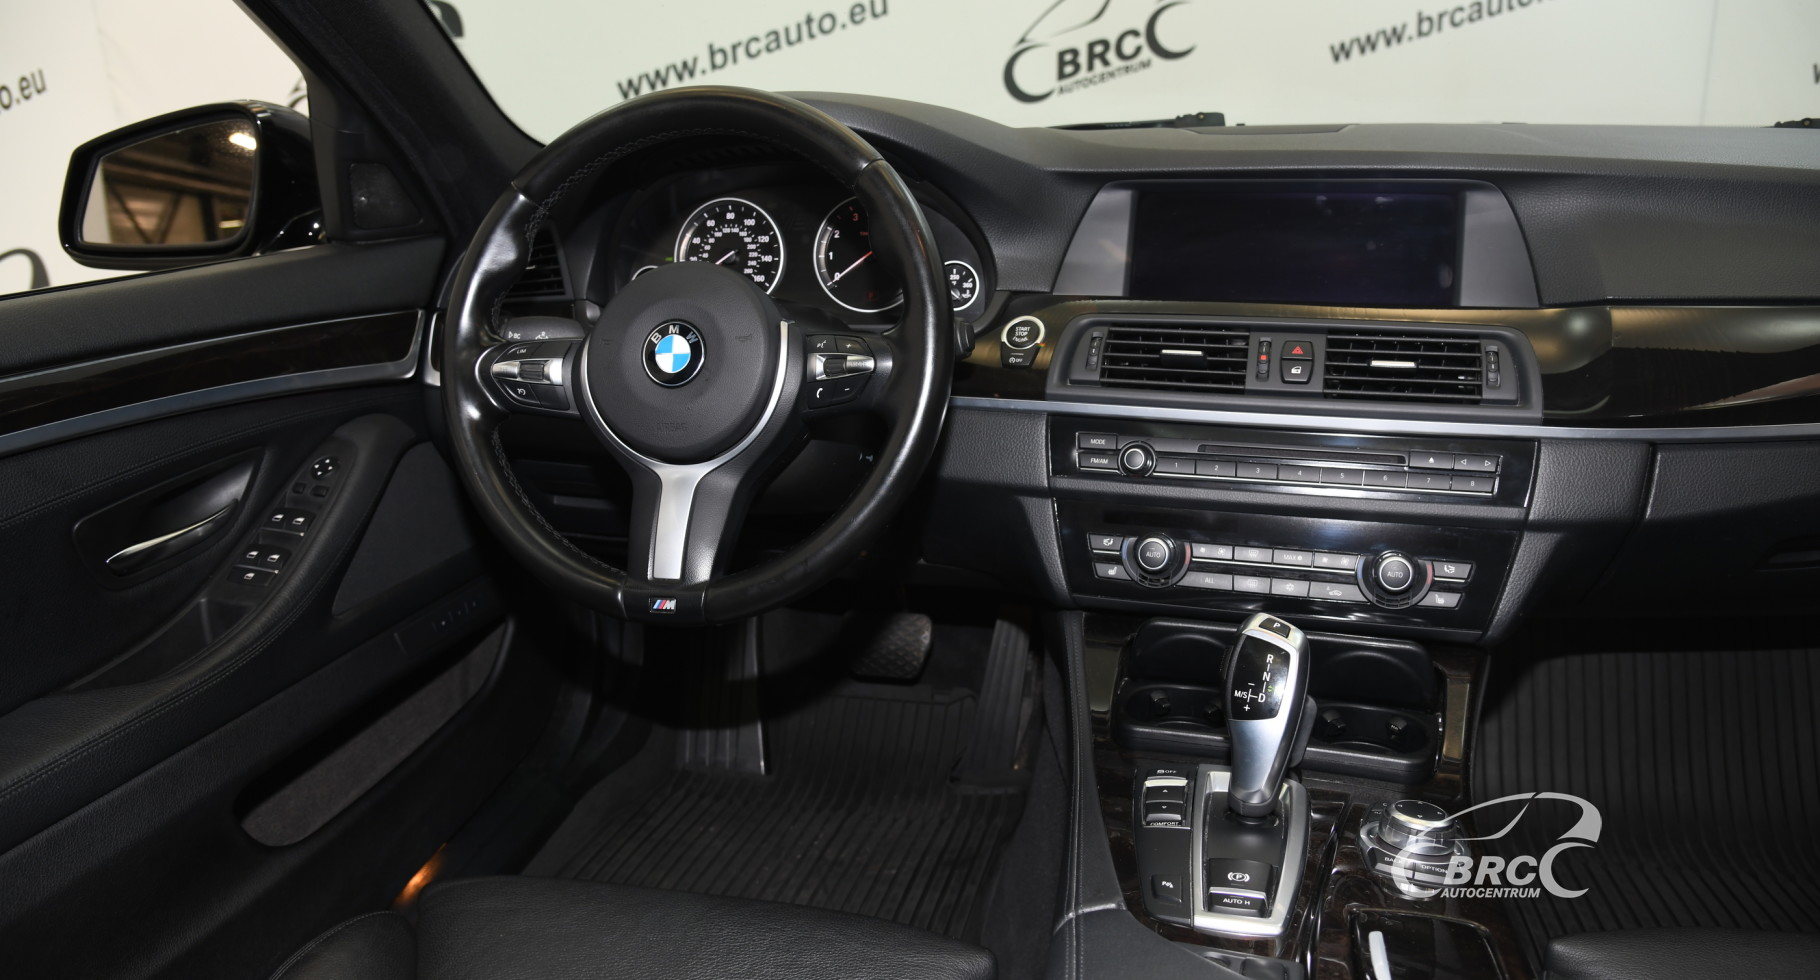 BMW 535 i M-packet Automatas